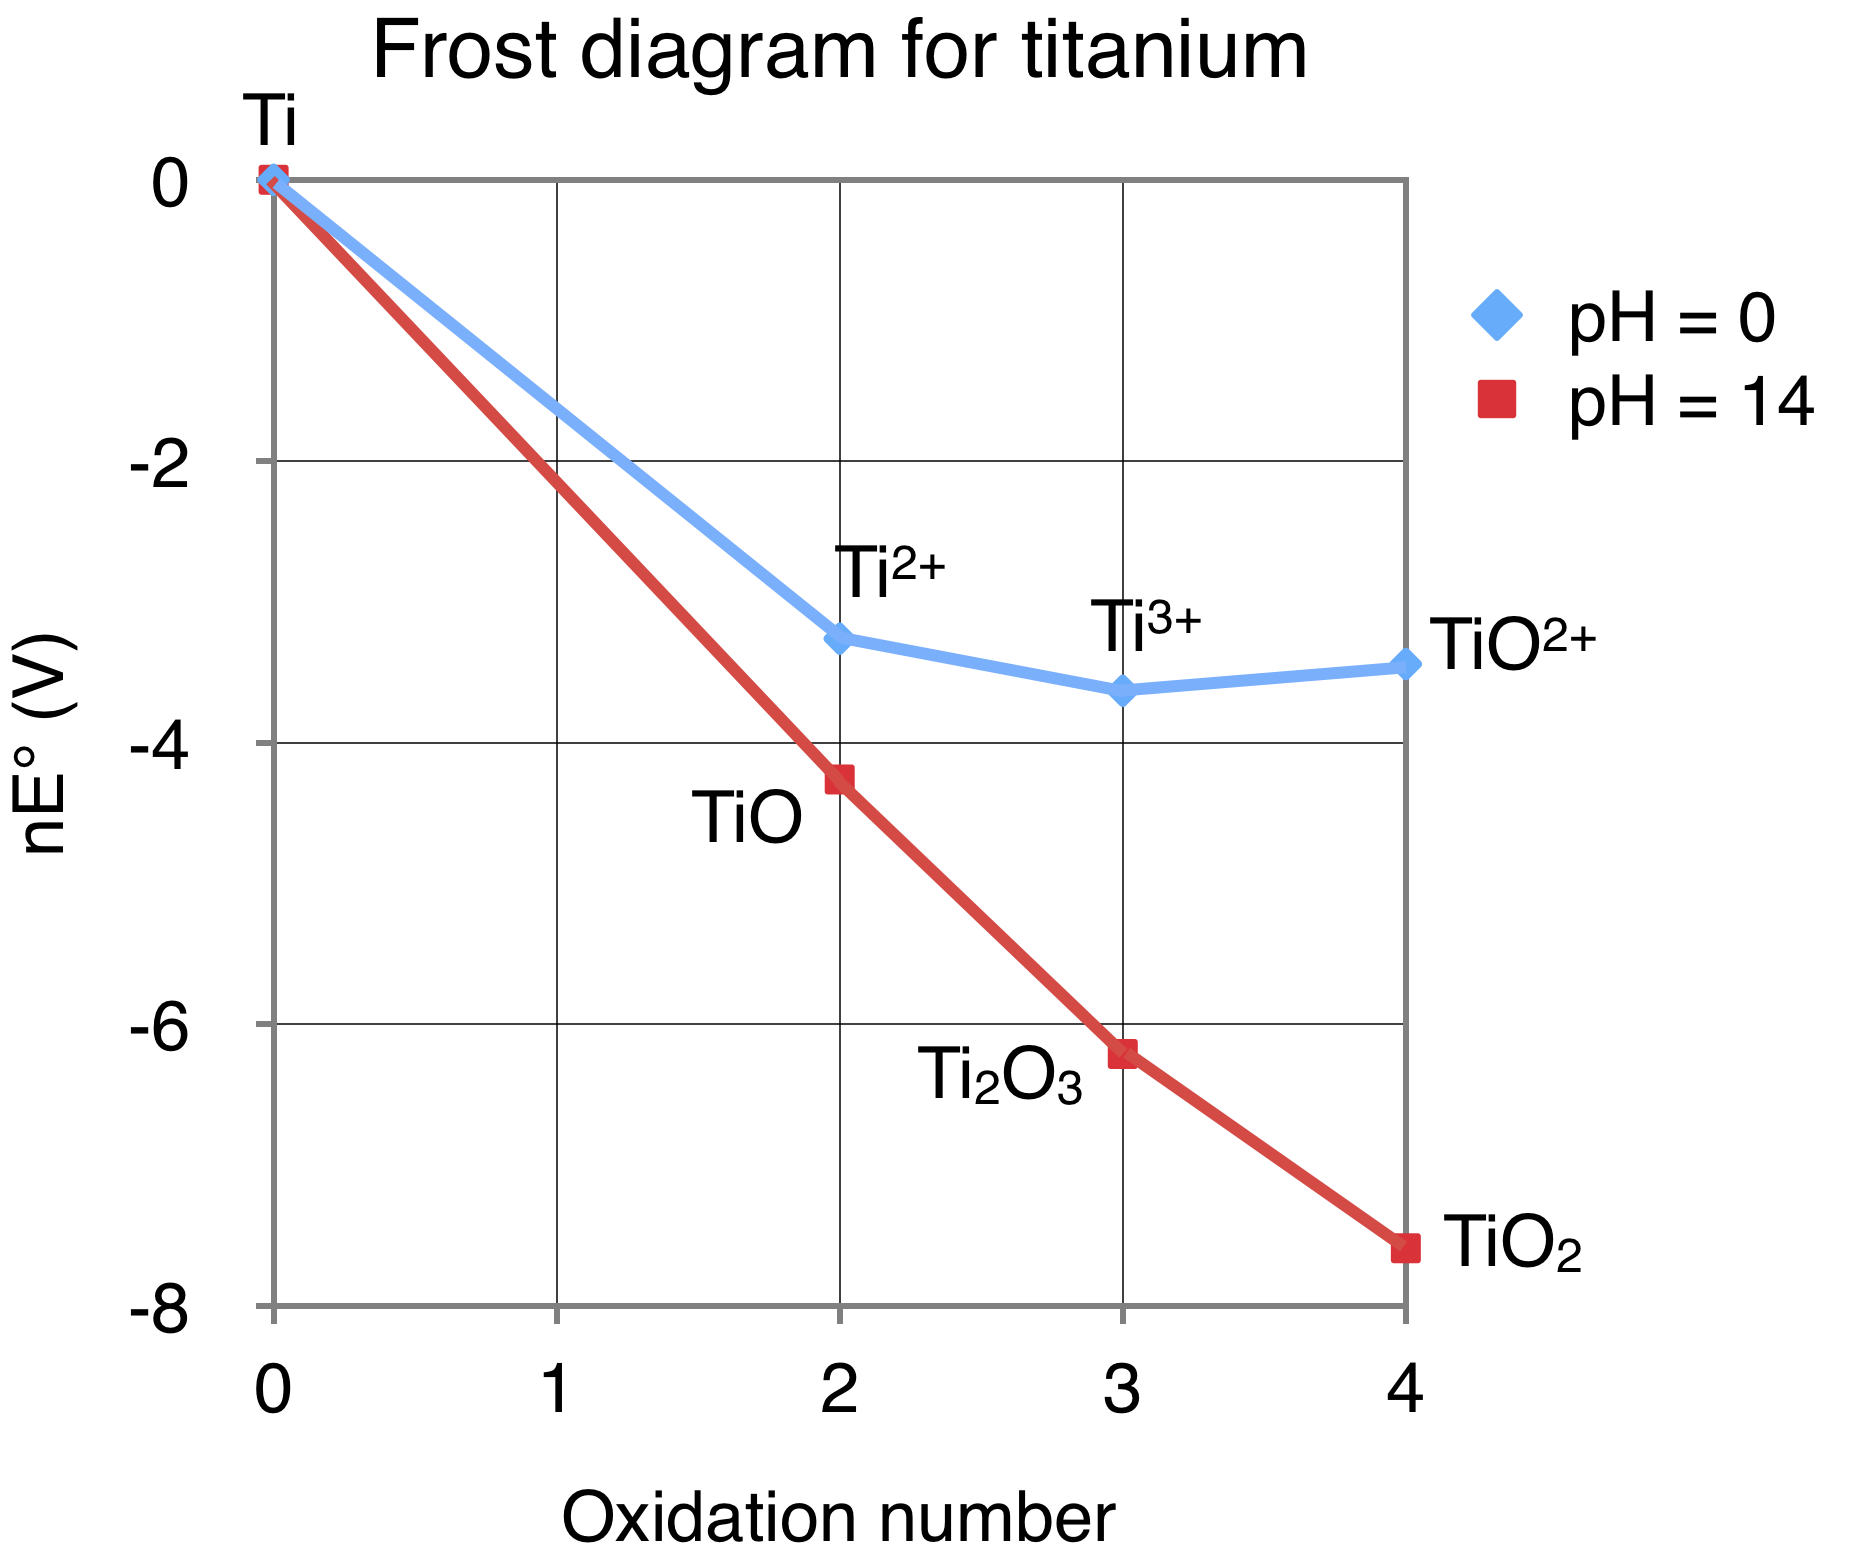 titanium phase diagram iron titanium frost diagram file:frost diagram for titanium.png - wikimedia commons